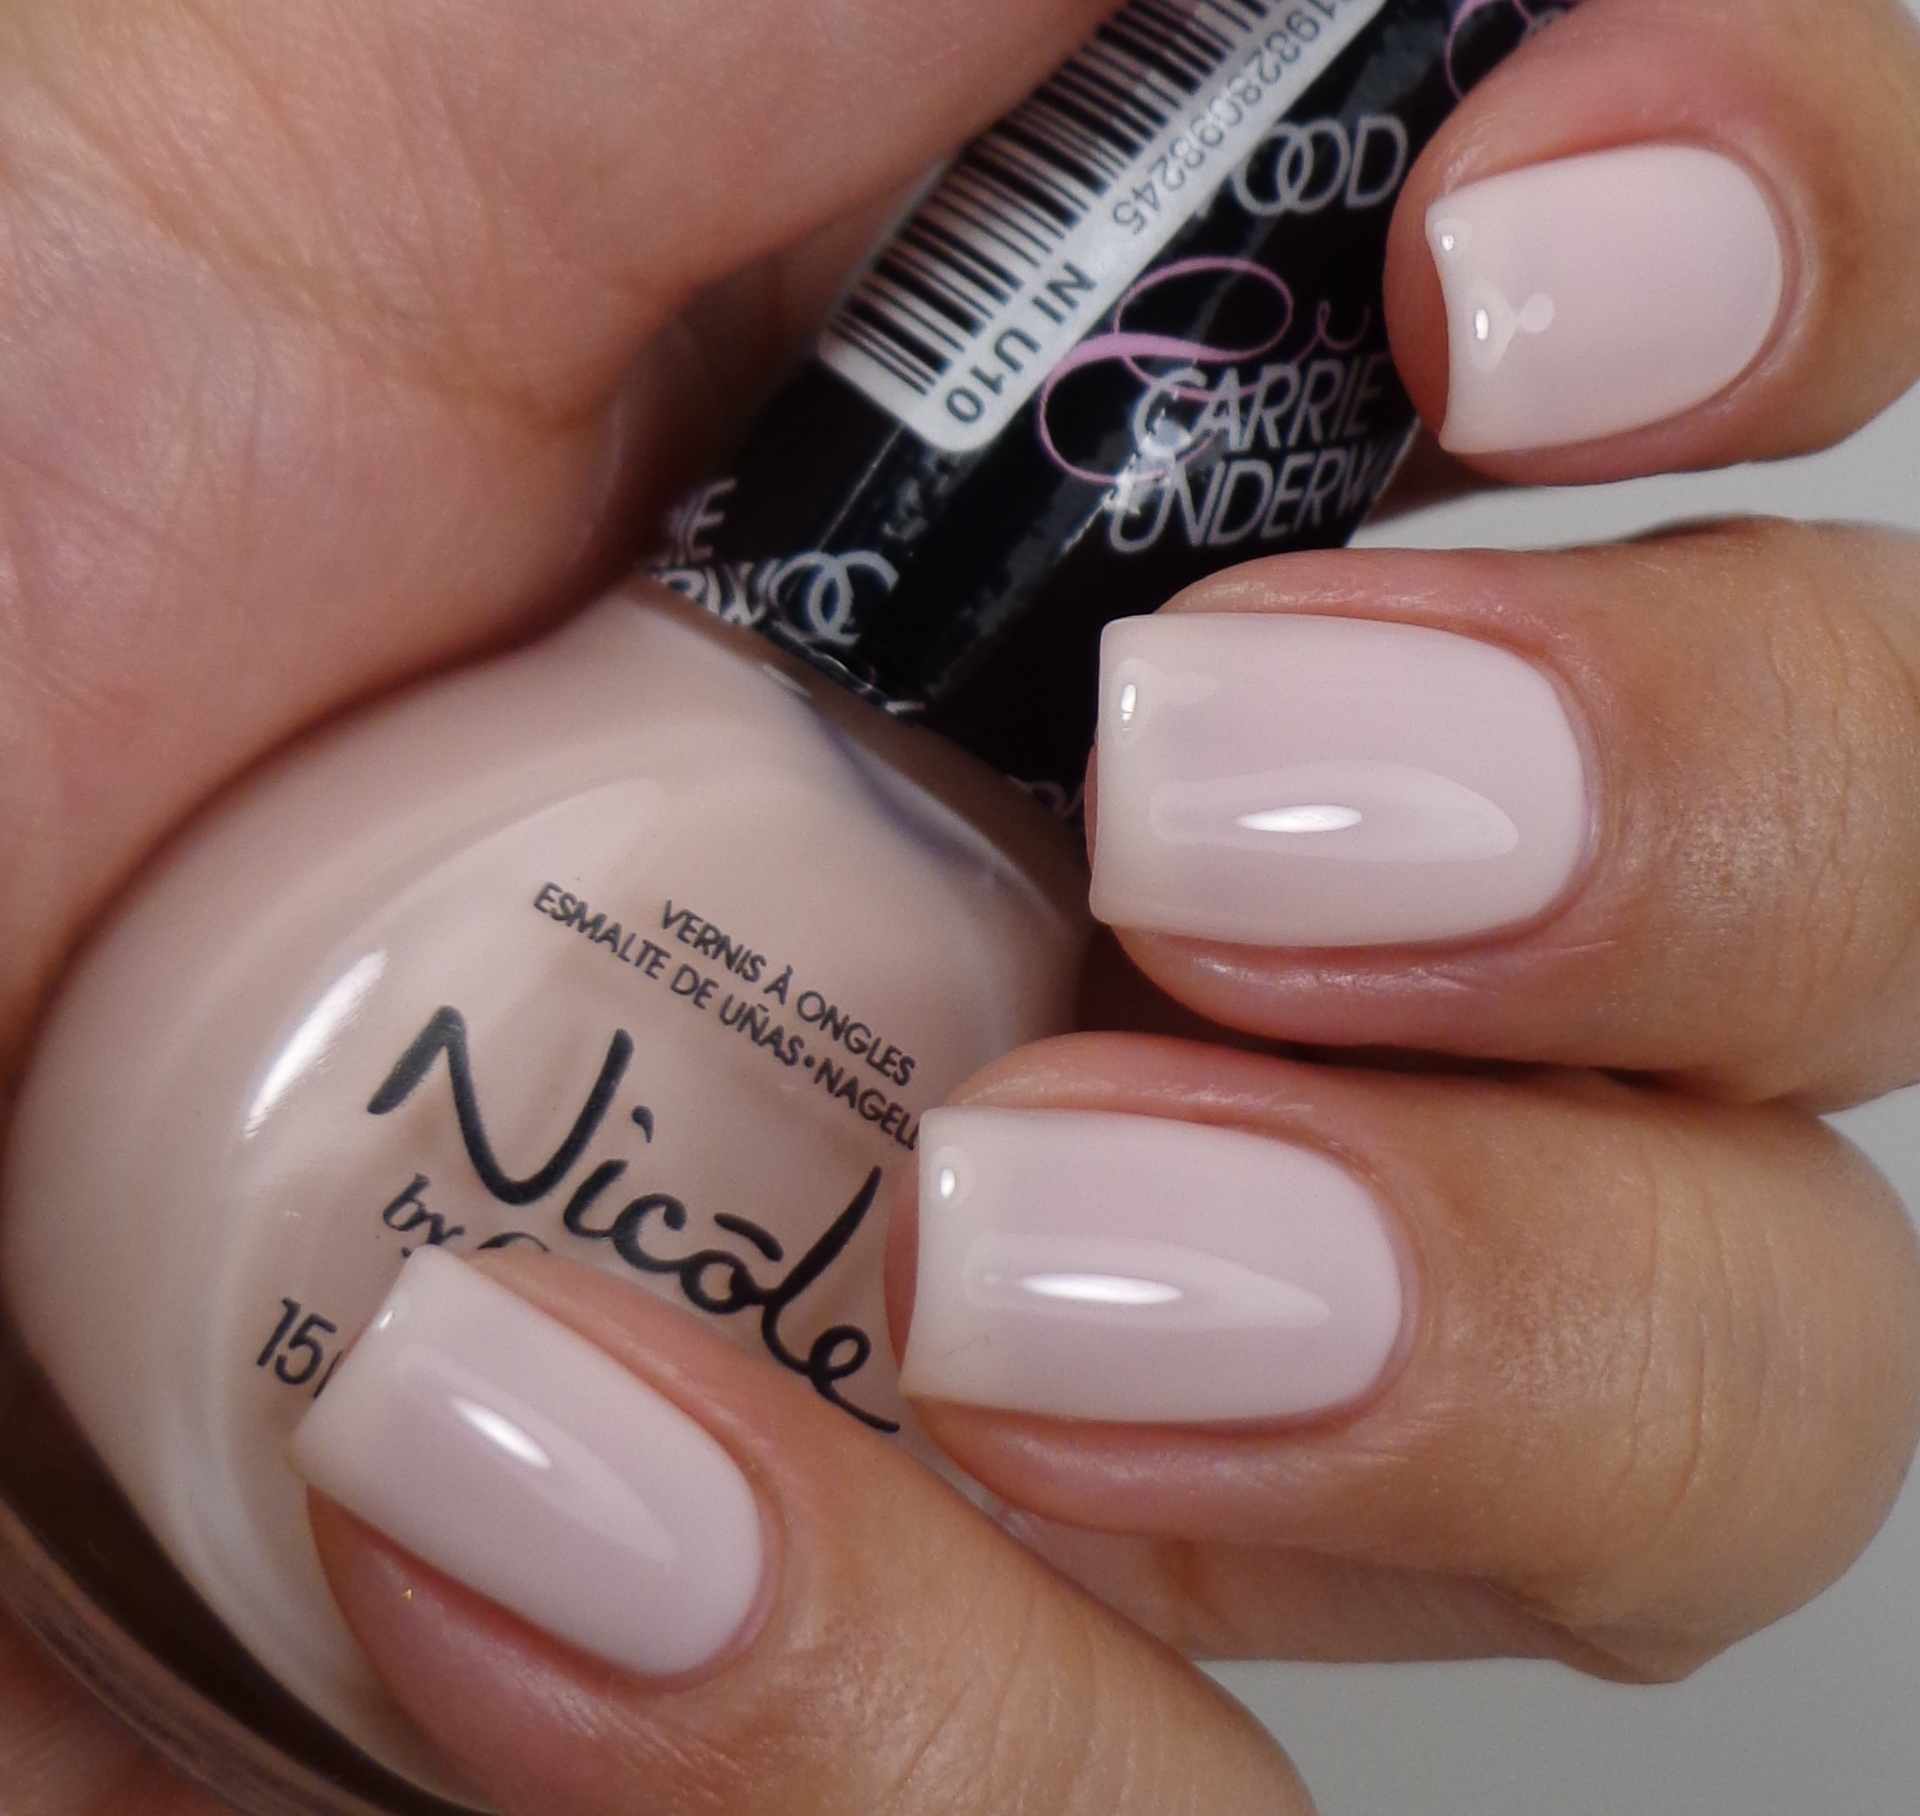 Carrie Underwood For Nicole by OPI - Swatches & Review - Of Life and ...